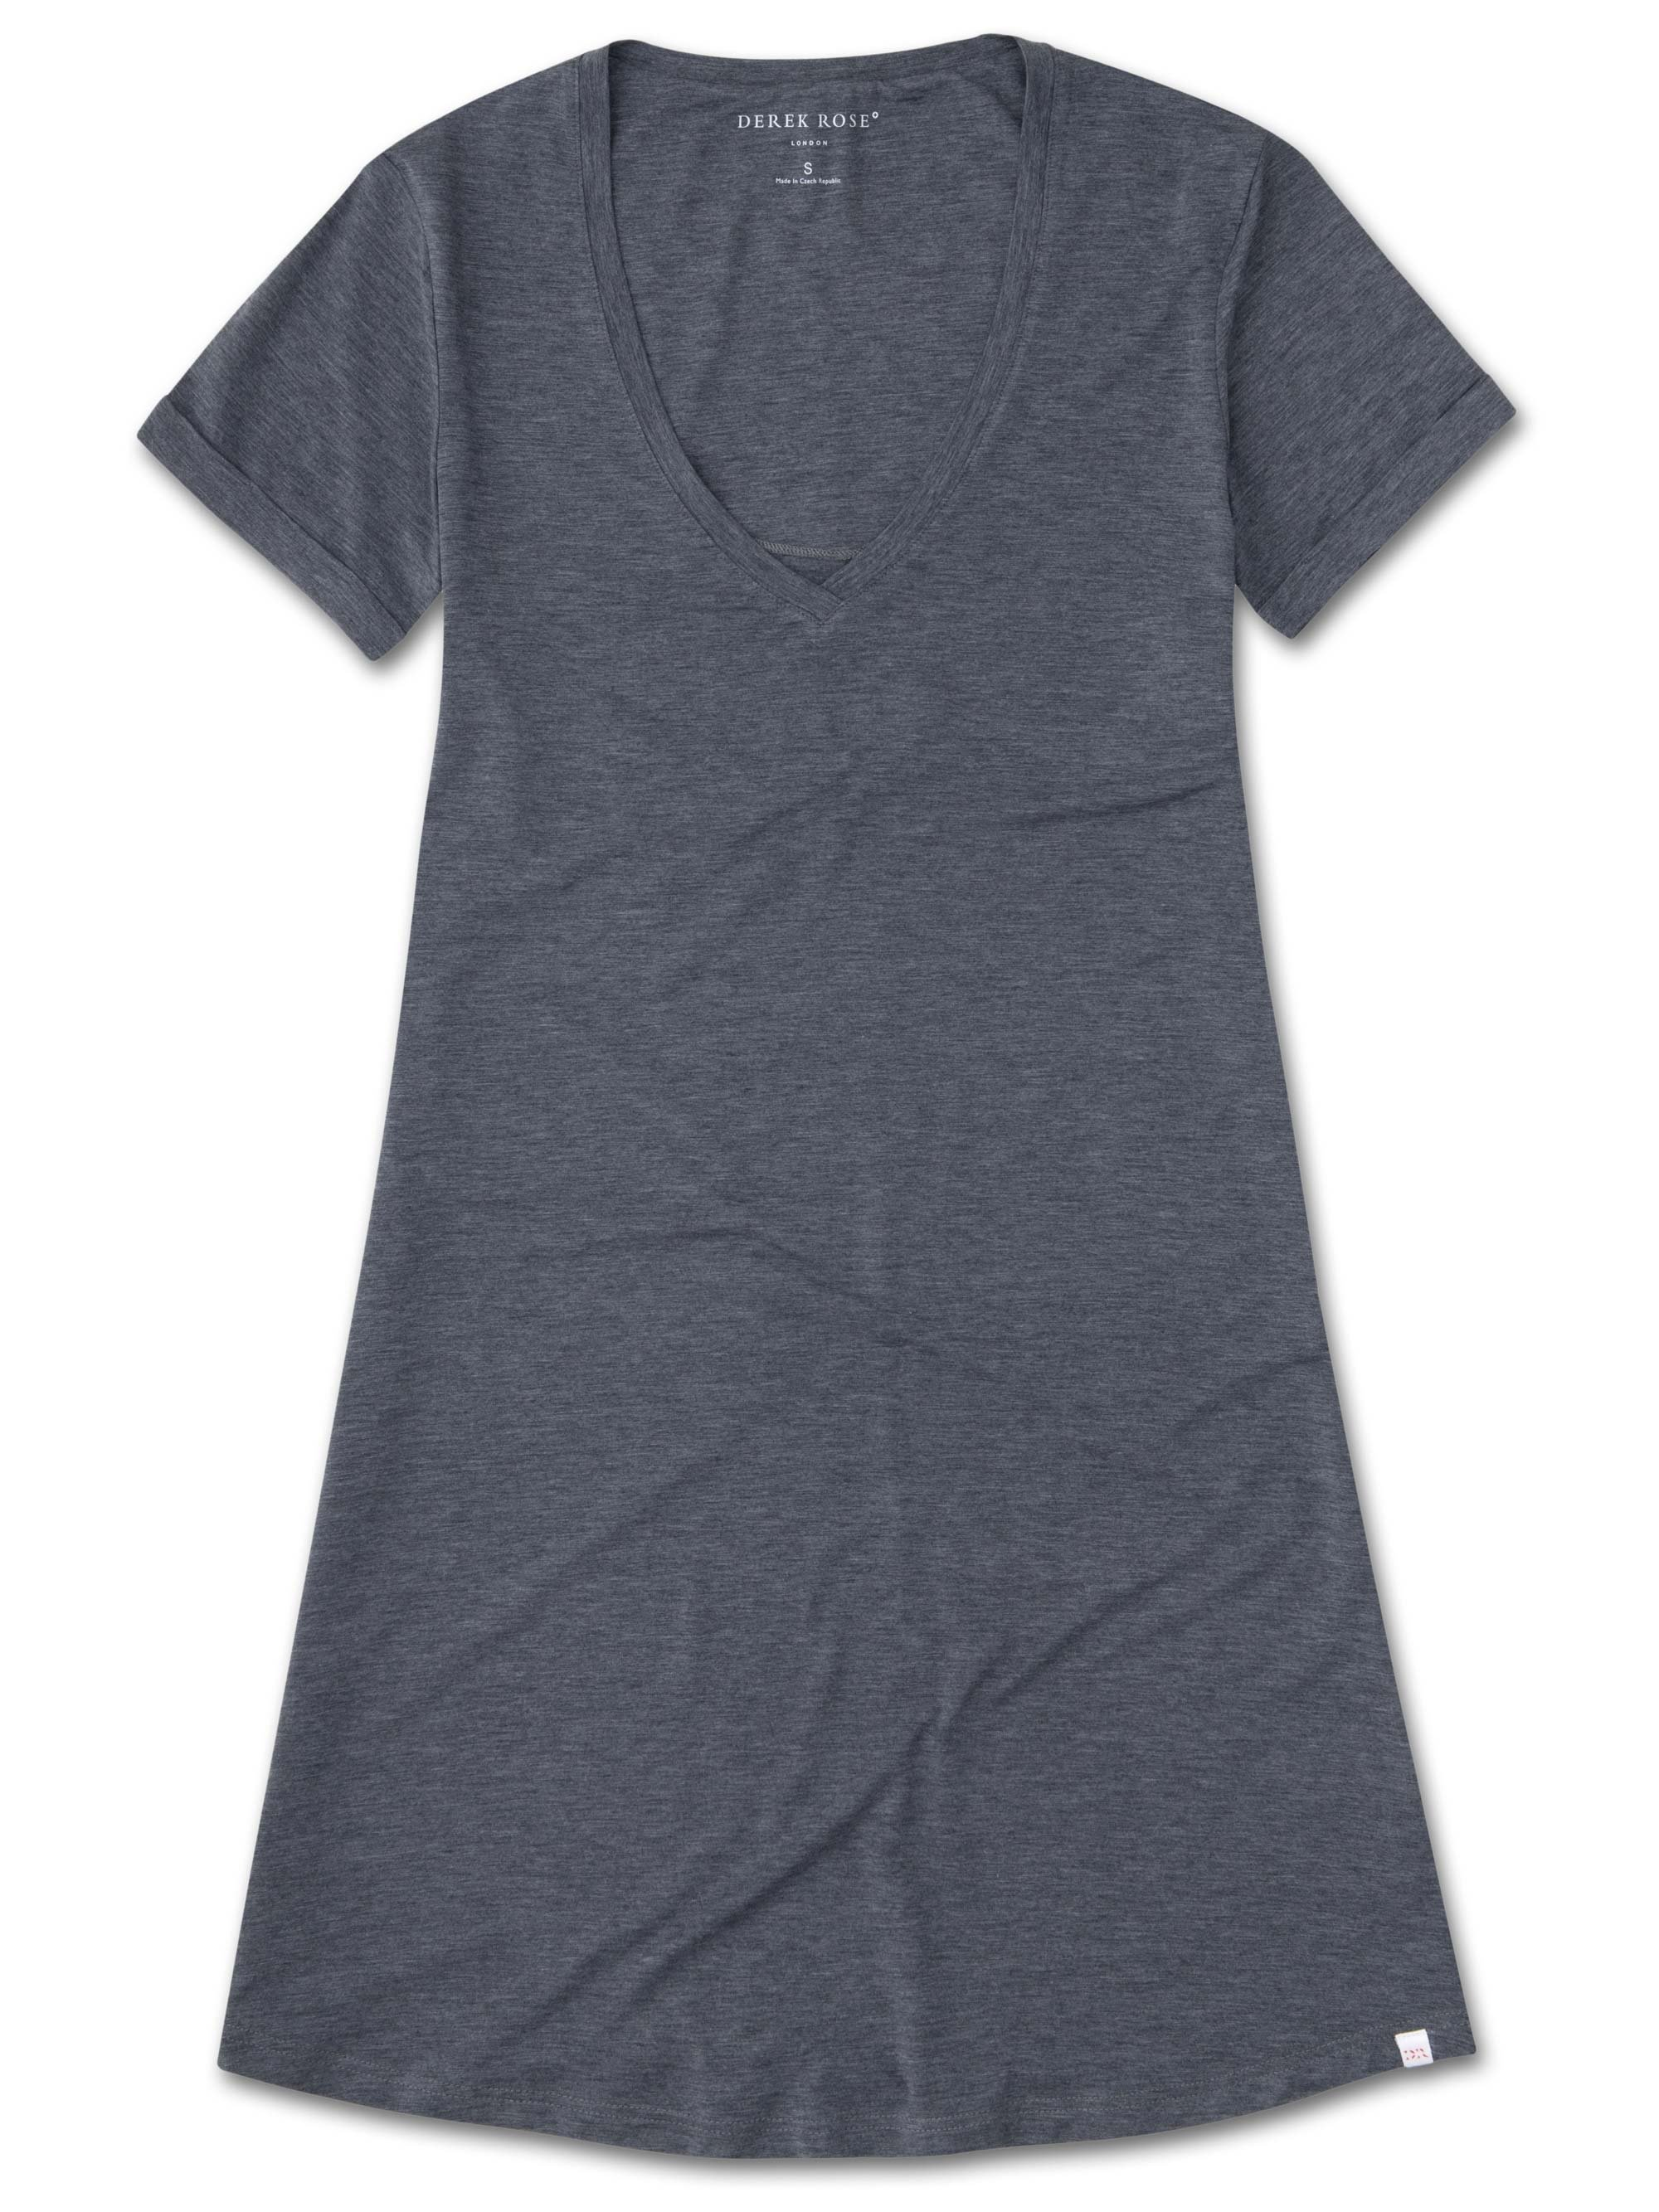 Women's V-Neck Sleep T-Shirt Ethan 2 Micro Modal Stretch Charcoal